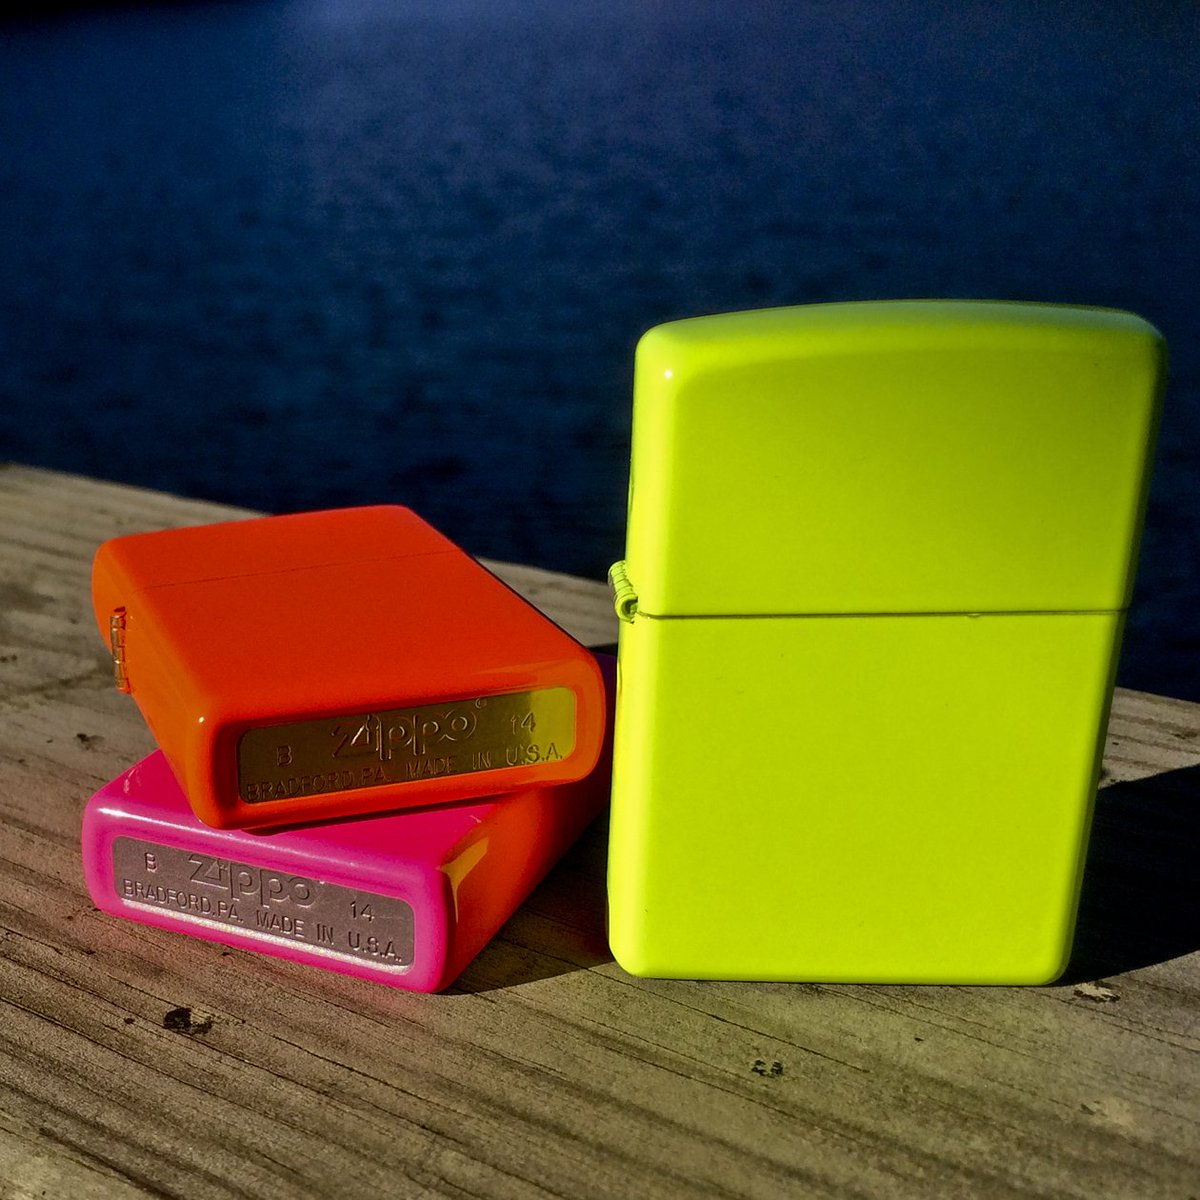 We added a little flare to our click. RT if you love our new #Neon #Zippo lighters! https://t.co/qhD989drys